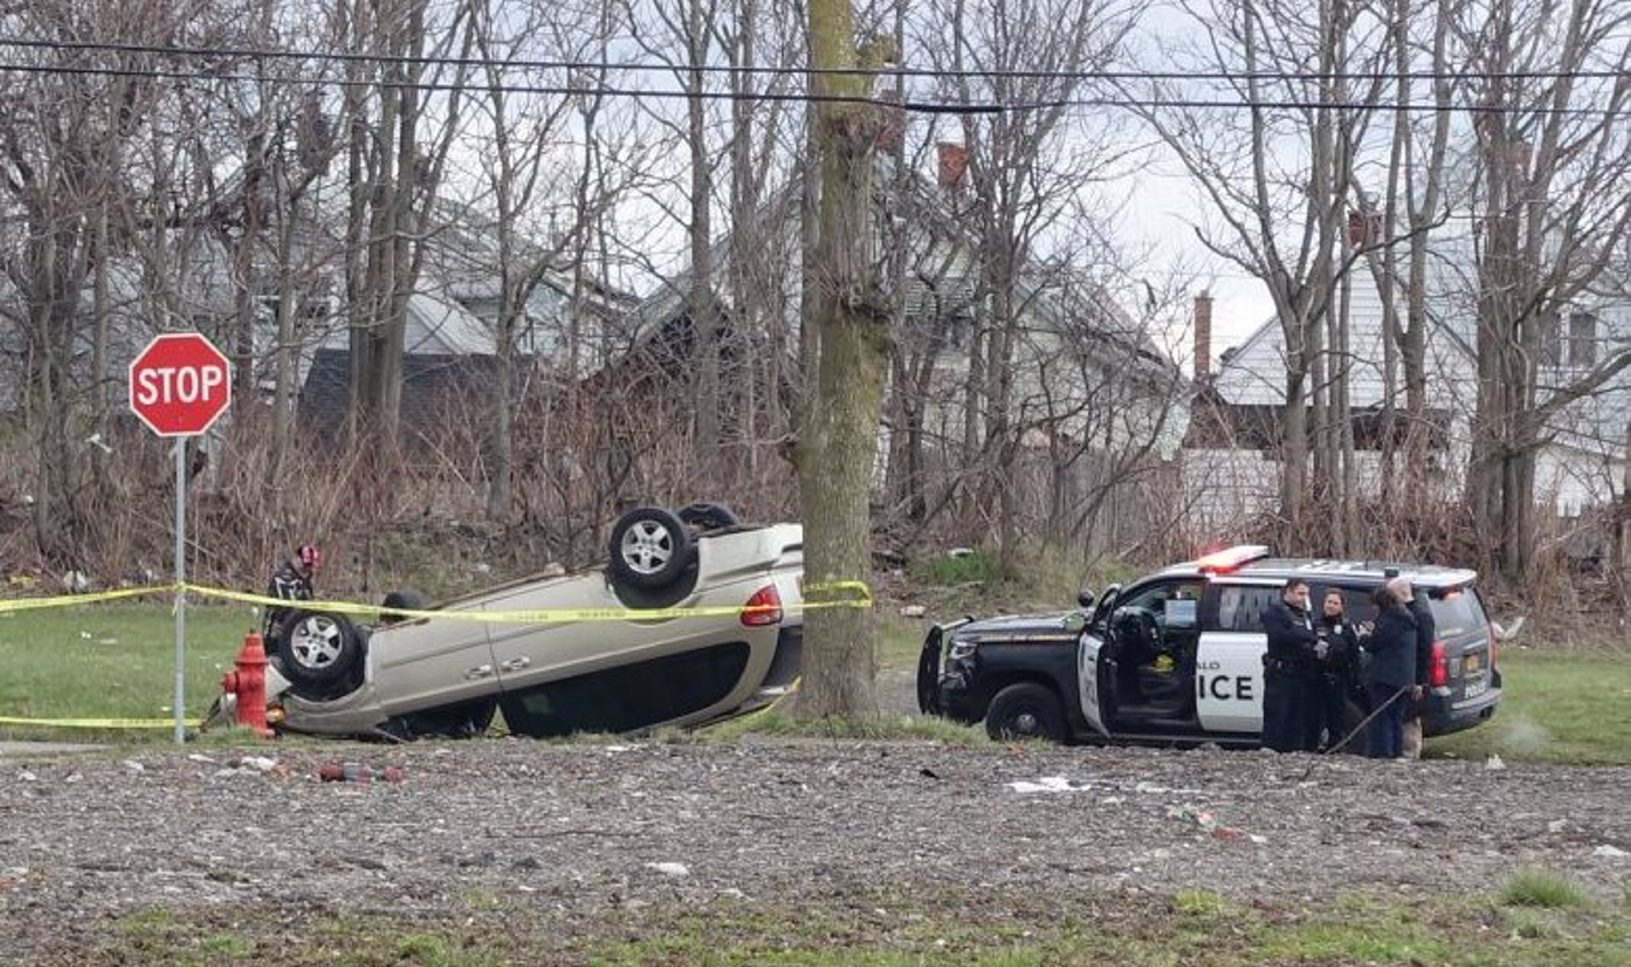 Buffalo Police at the scene of an overturned vehicle and reports of shots fired on Wick Street by Brier Street.